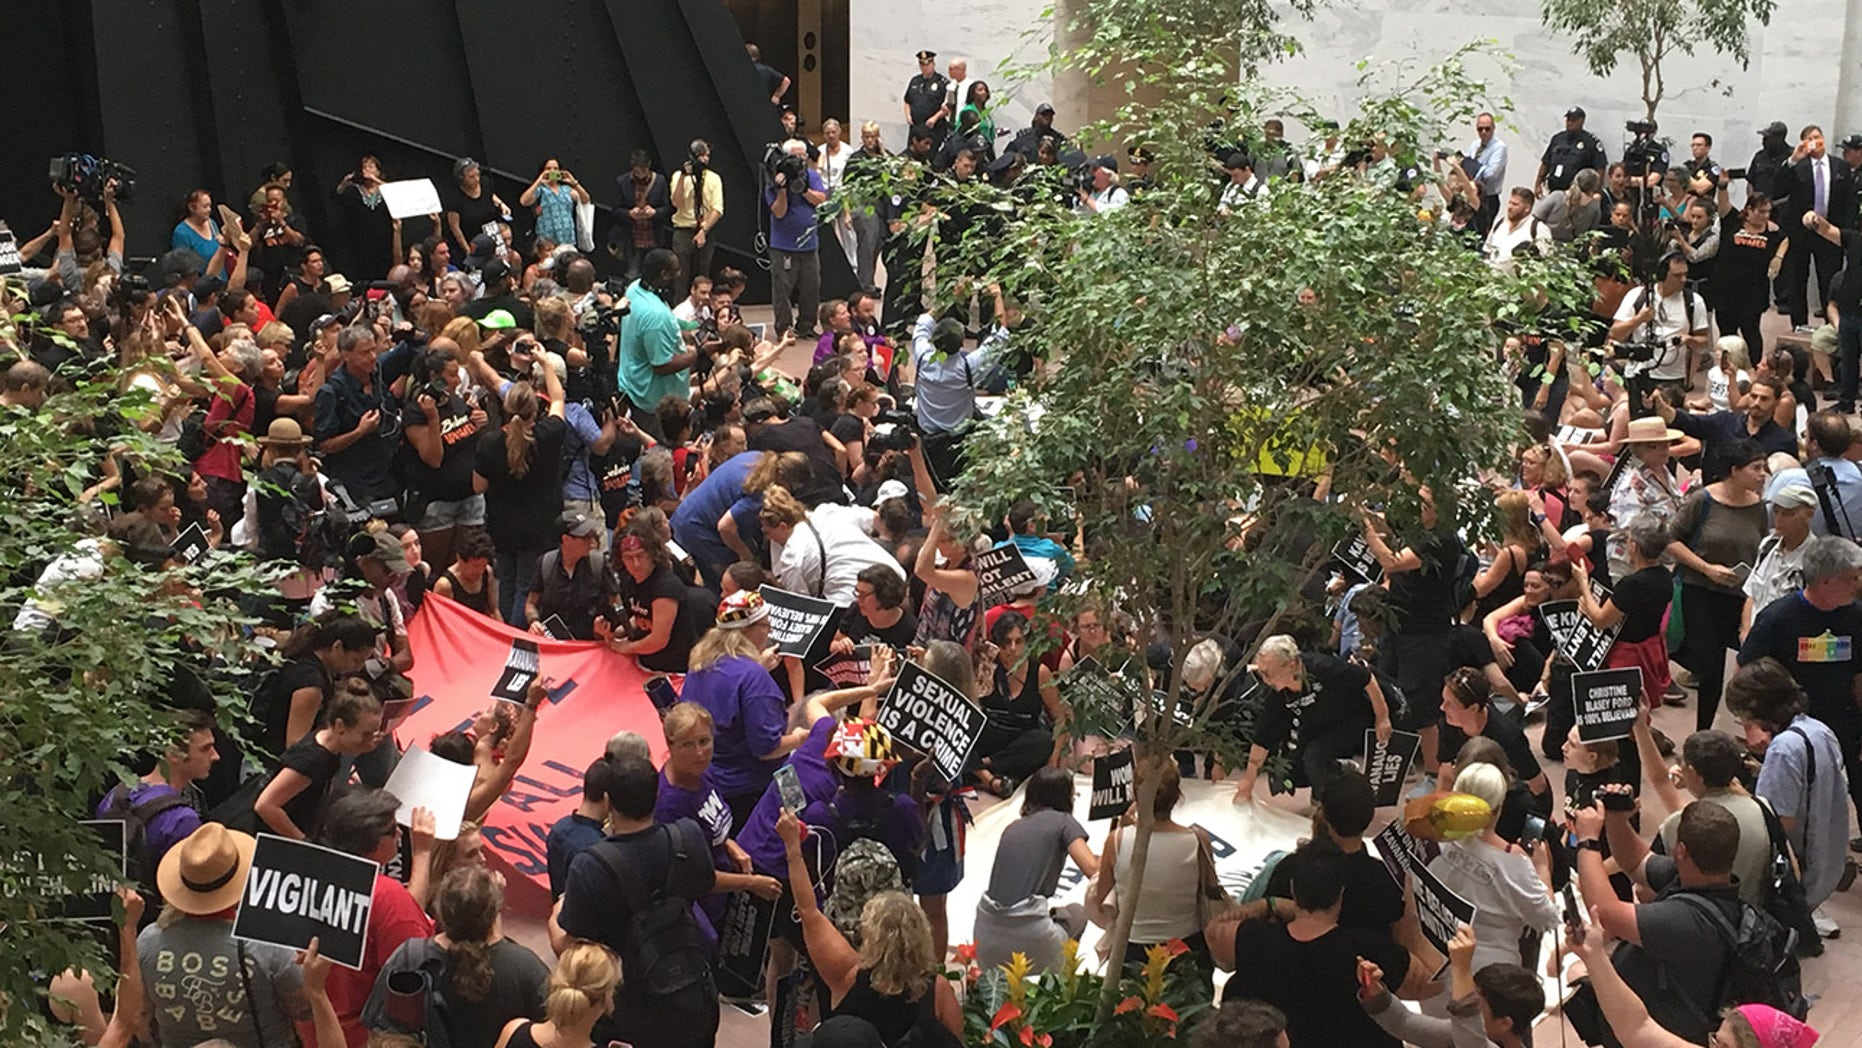 Hundreds of protesters demonstrate against Brett Kavanaugh's nomination to the Supreme Court in the Hart Senate Office Building in Washington. (NuNu Japardize/Fox News)